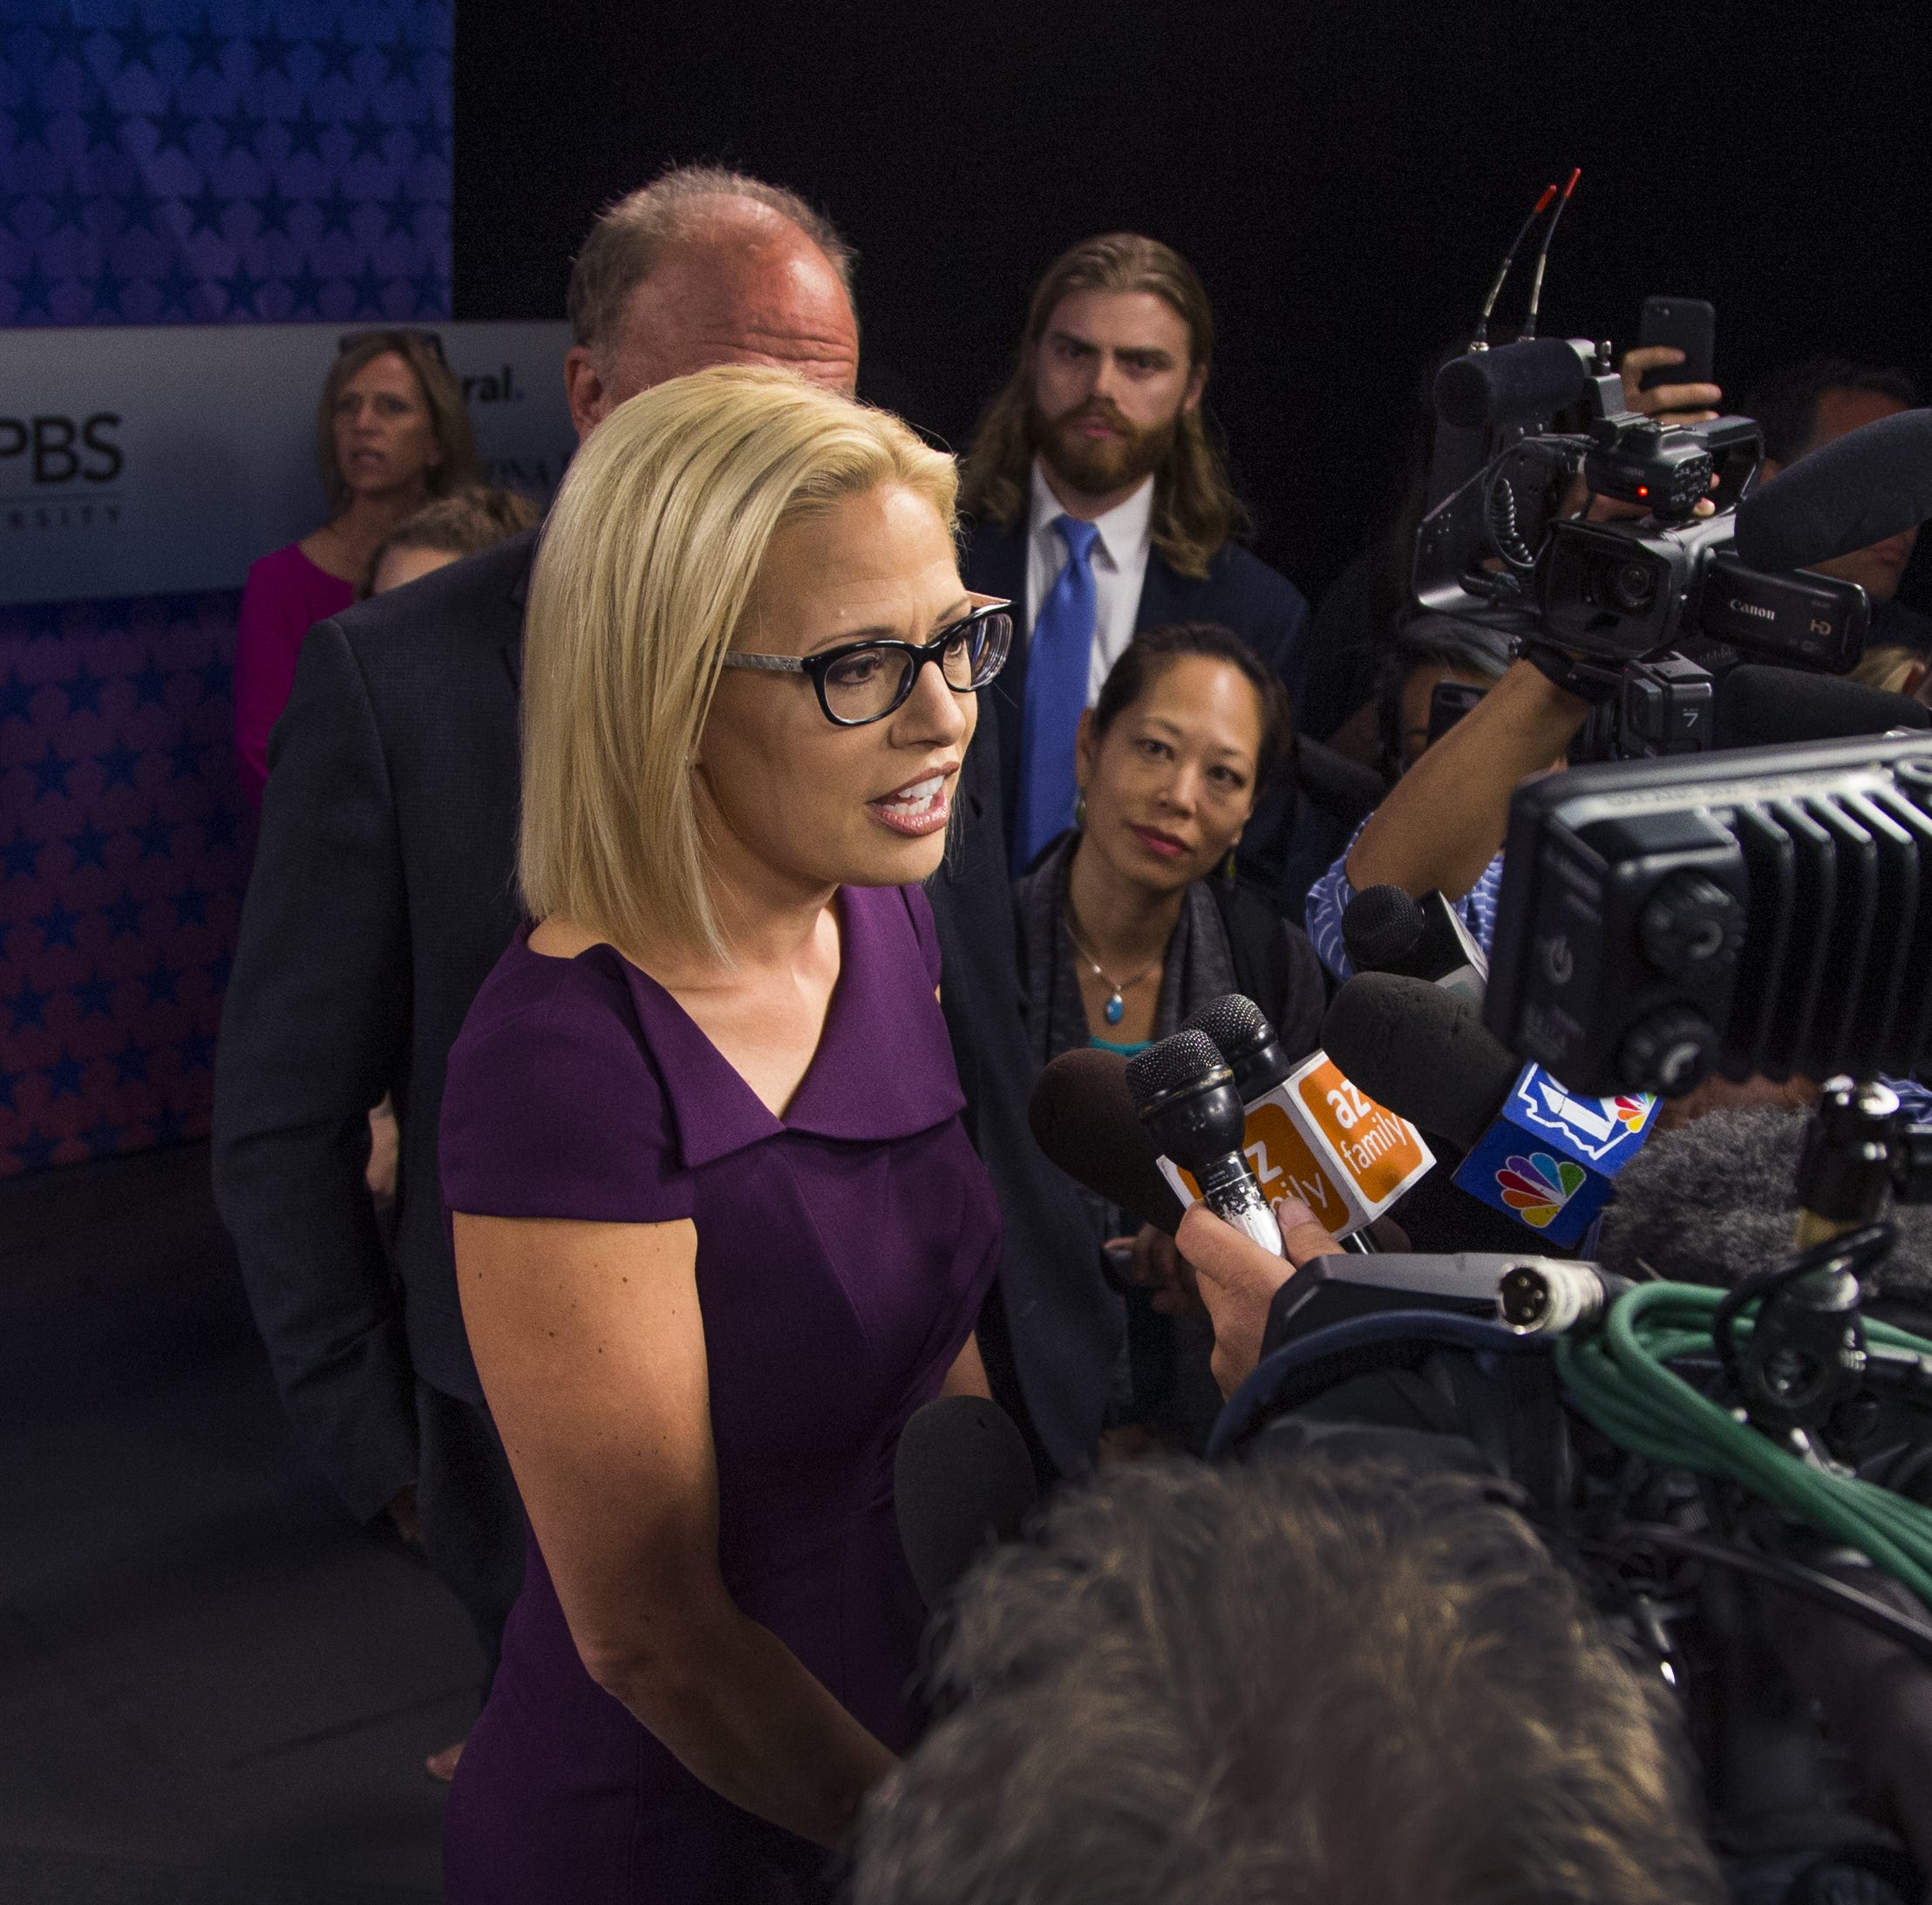 Kyrsten Sinema's plan to protect Medicare: Do nothing, wait for a big benefit cut